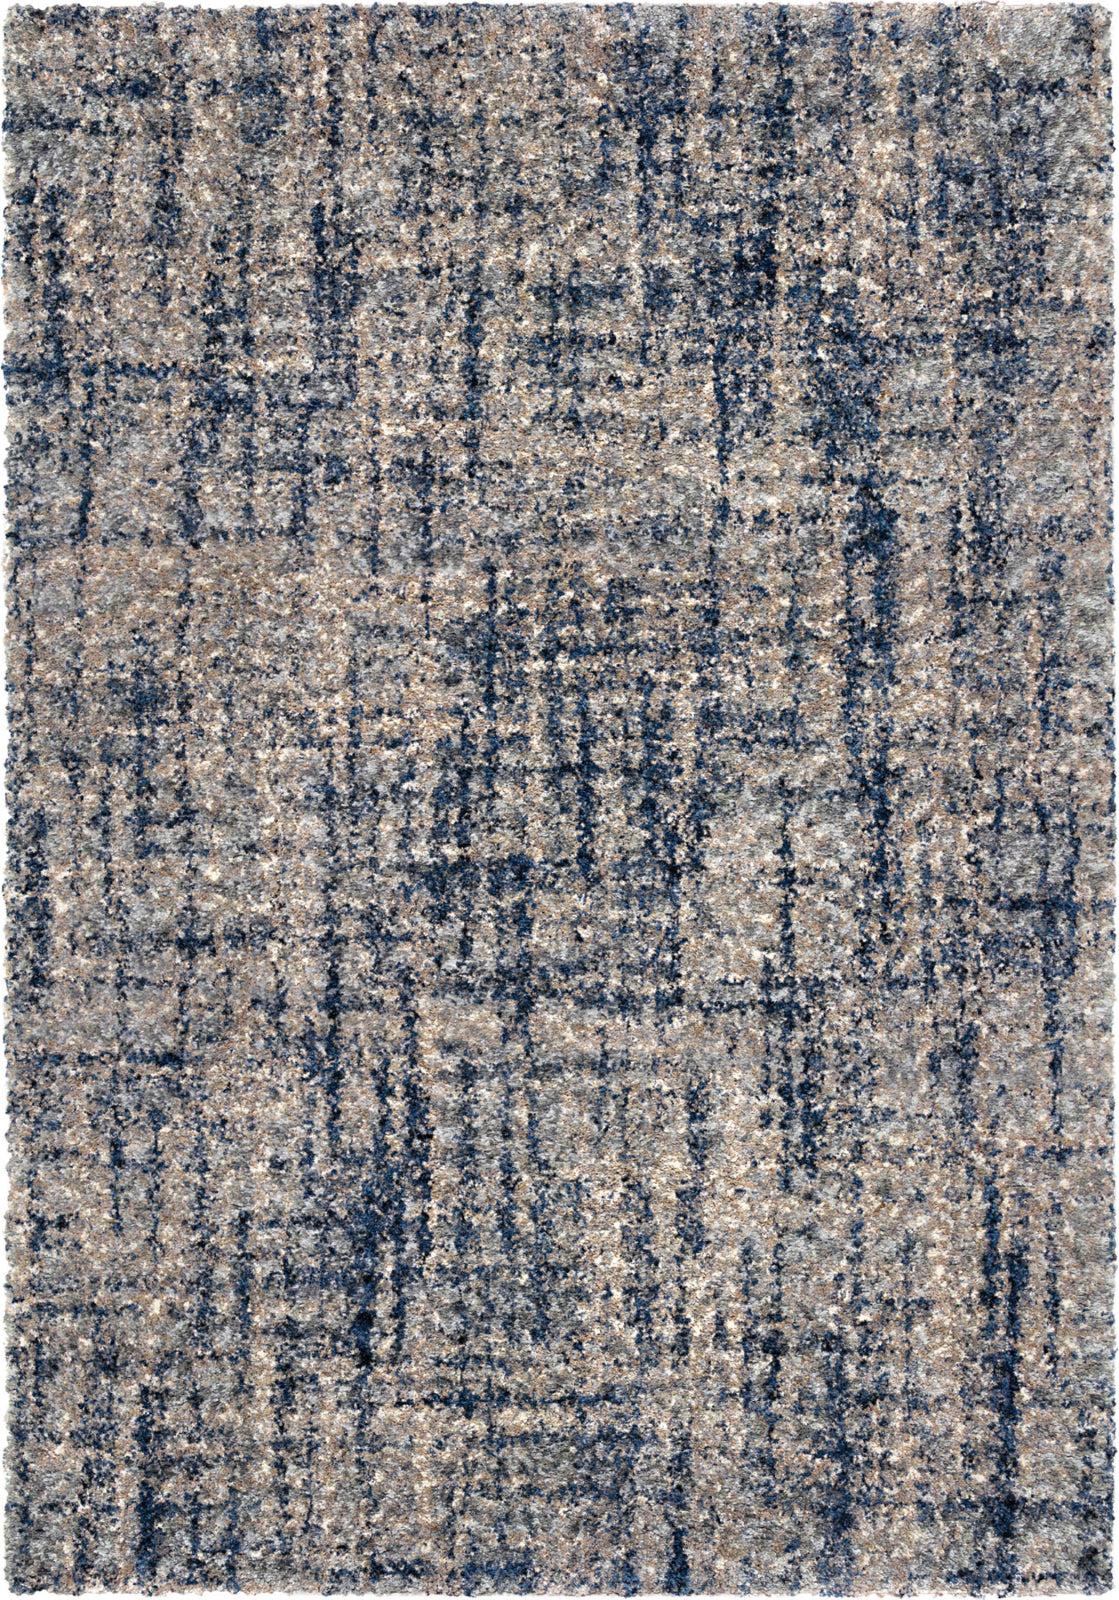 Orian Rugs Cotton Tail Cross Thatch Grey Area Rug by Palmetto Living main image